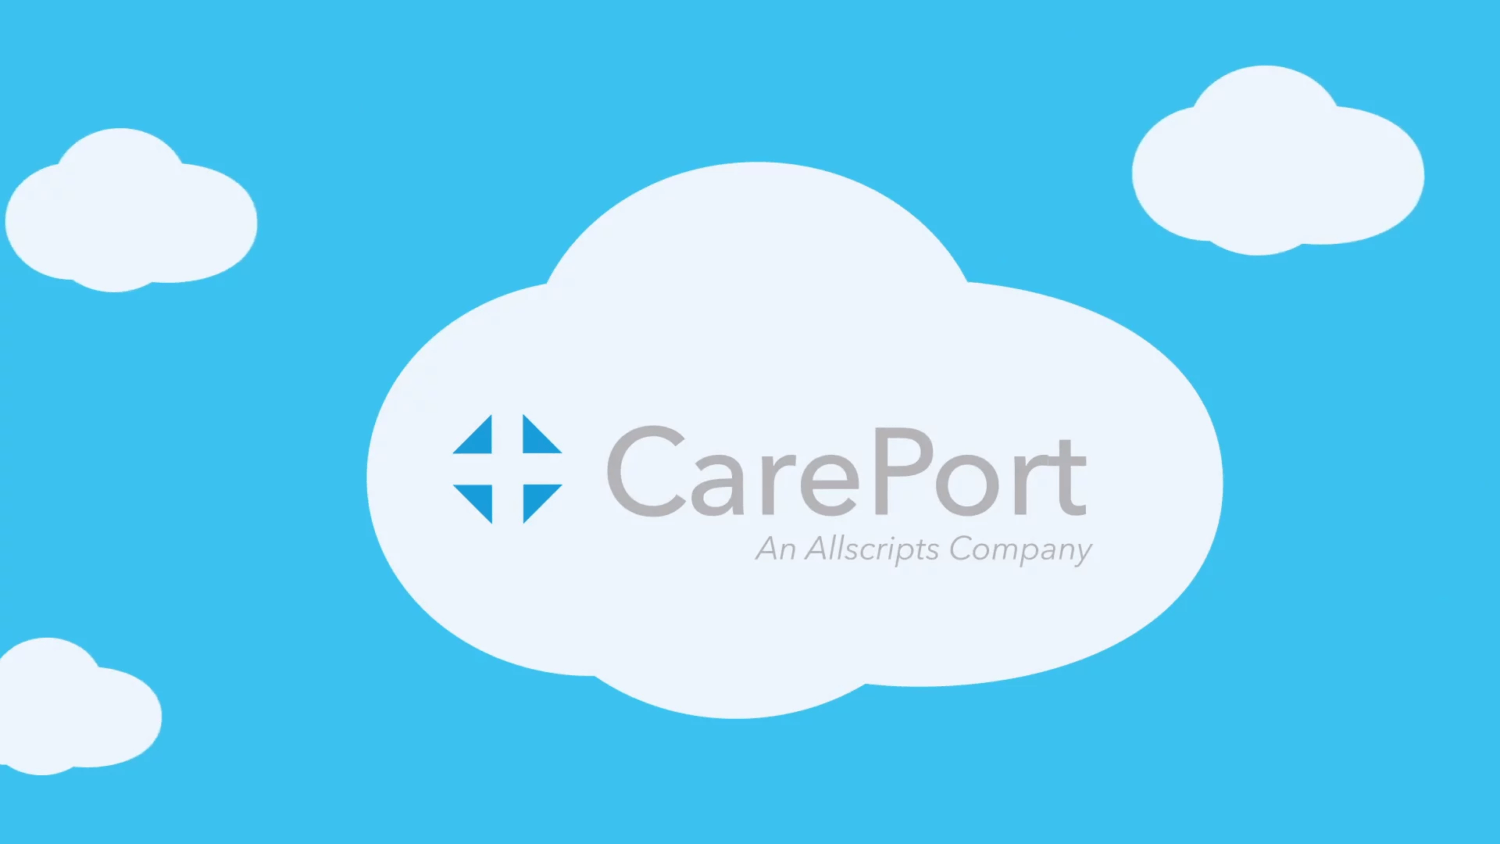 WellSky Acquires CarePort Health from Allscripts for $1.35B